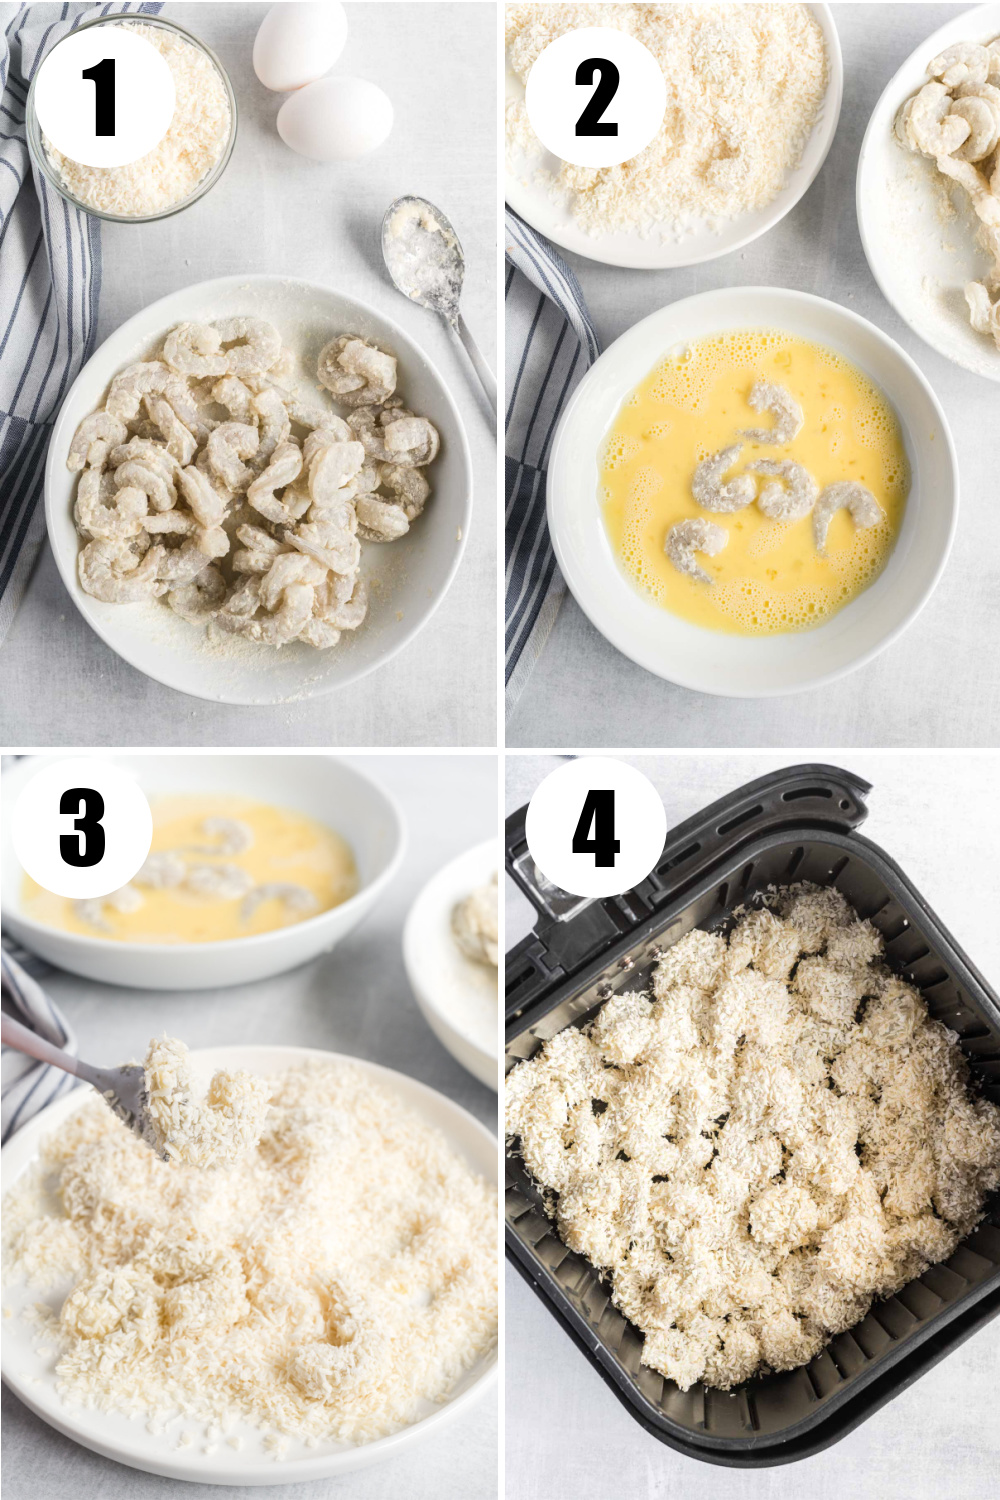 Four image collage. Top left, shrimp in a bowl coated in flour. Top right, shrimp dipped in egg wash. Bottom left, egg washed shrimp dipped in shredded coconut. Bottom right, coconut coated shrimp in air fryer basket.